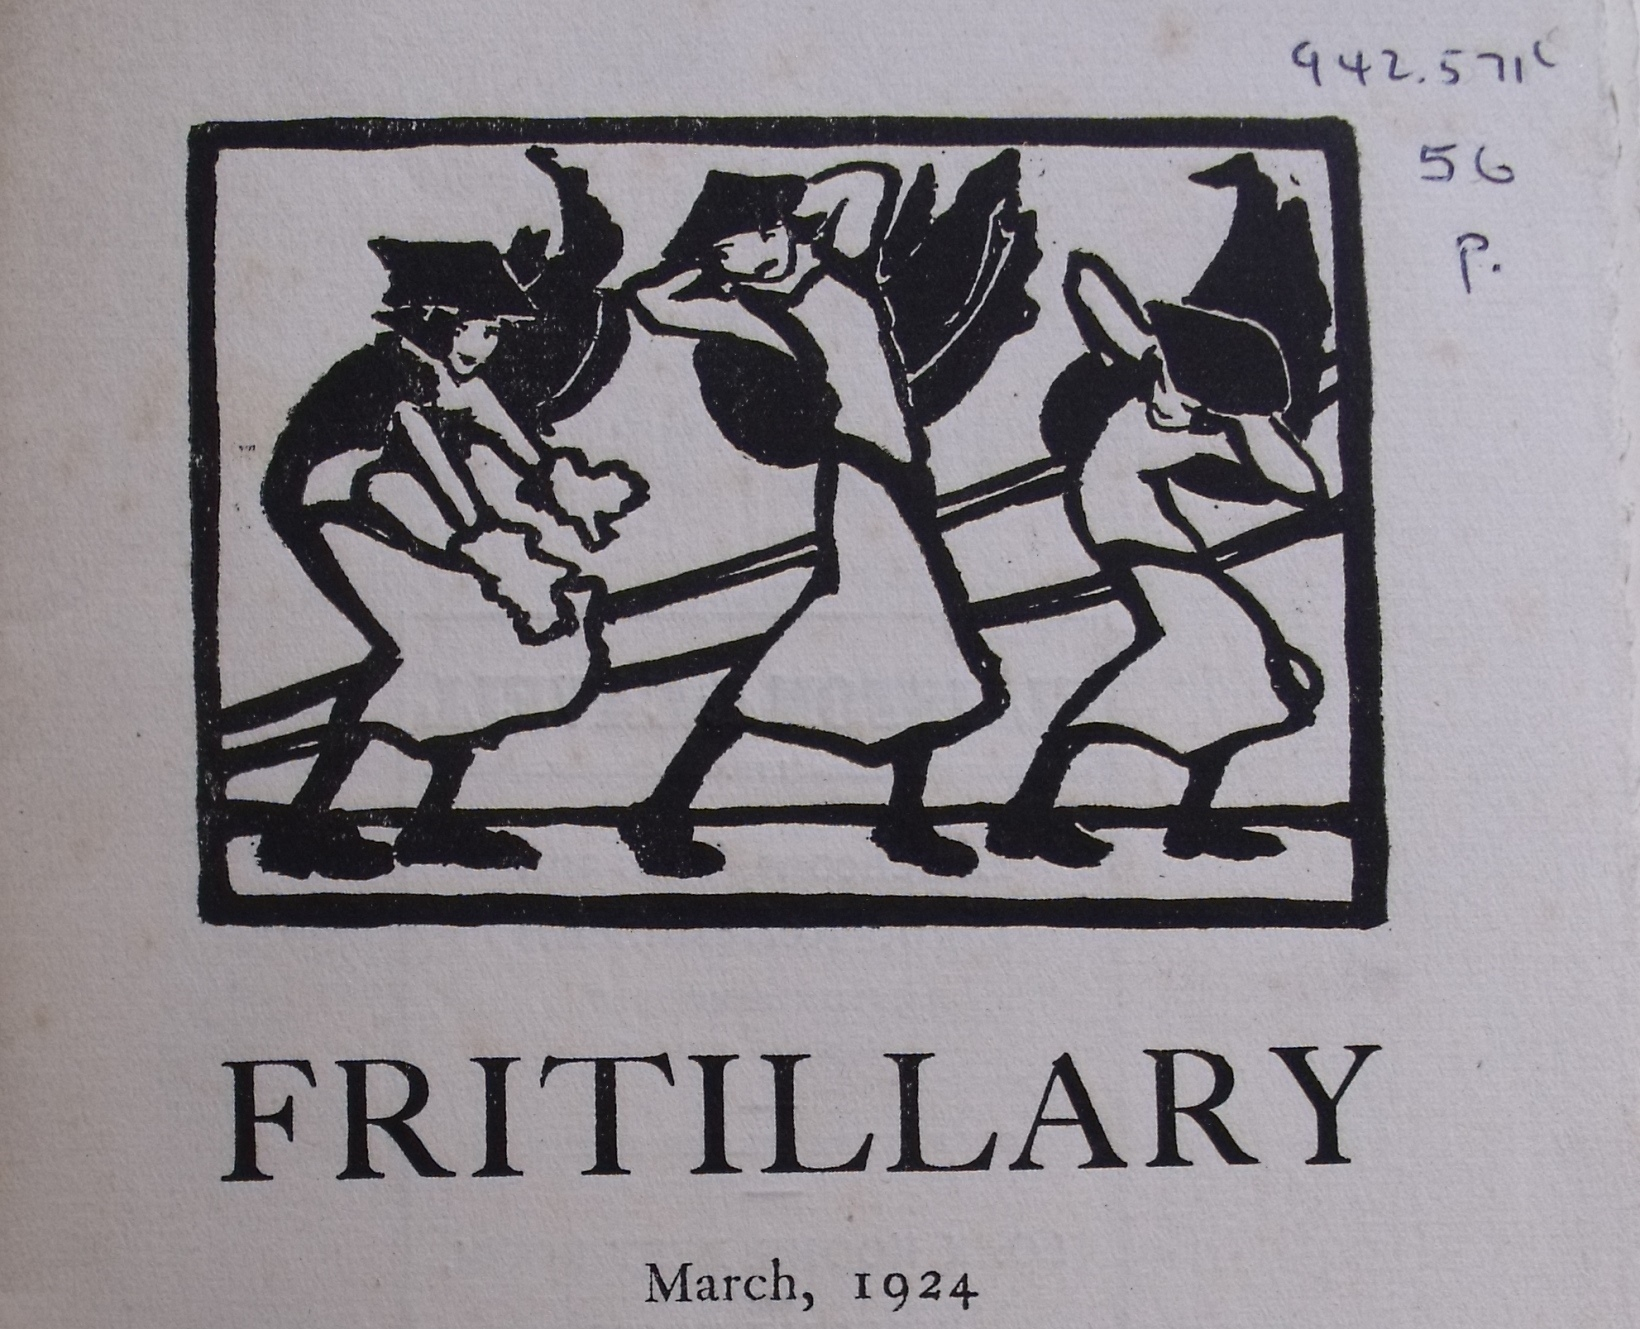 The Fritillary, March 1924